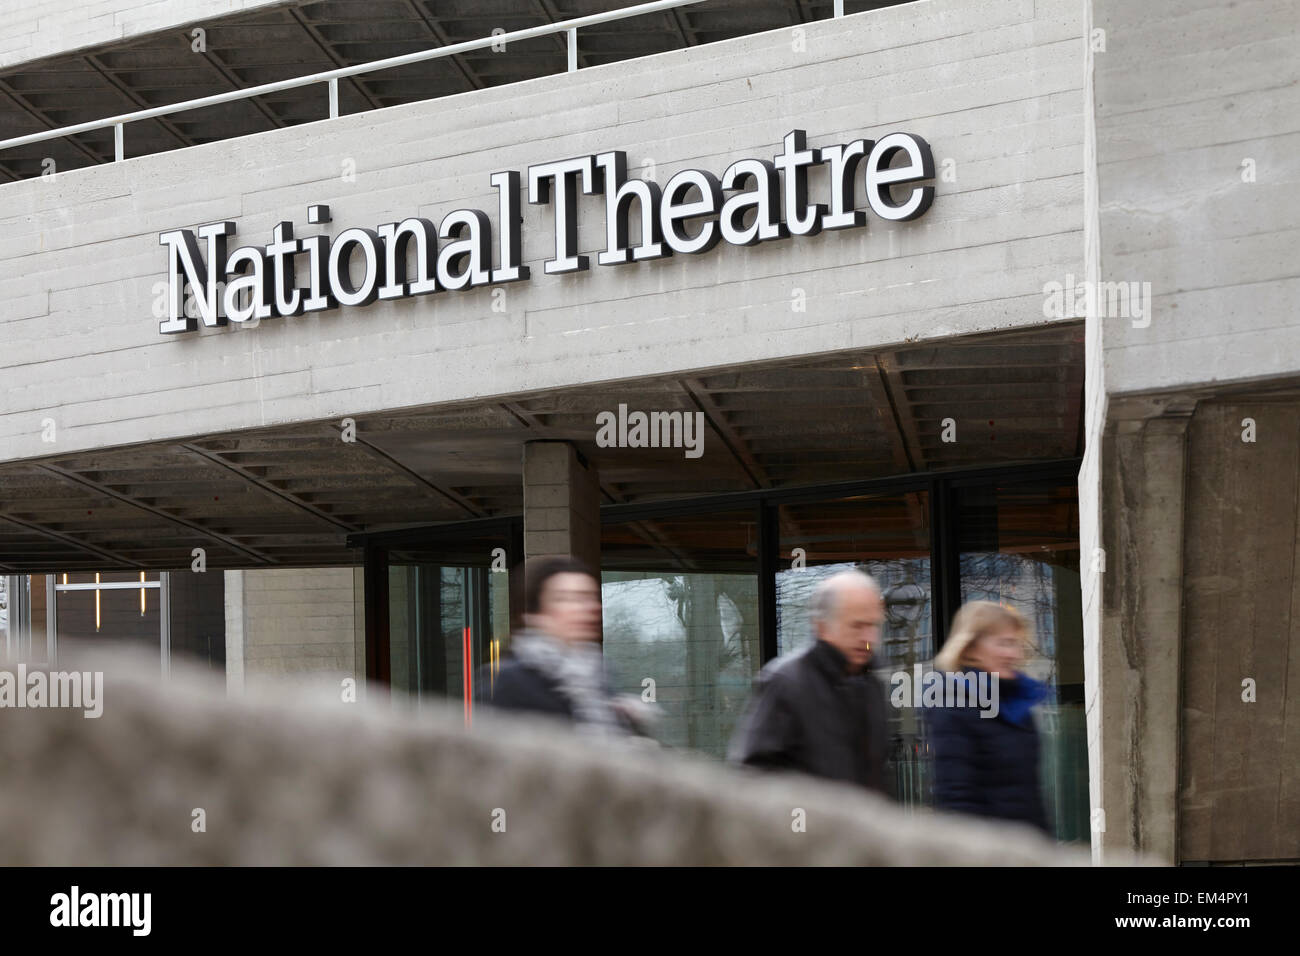 The National Theatre on London's South Bank - Stock Image